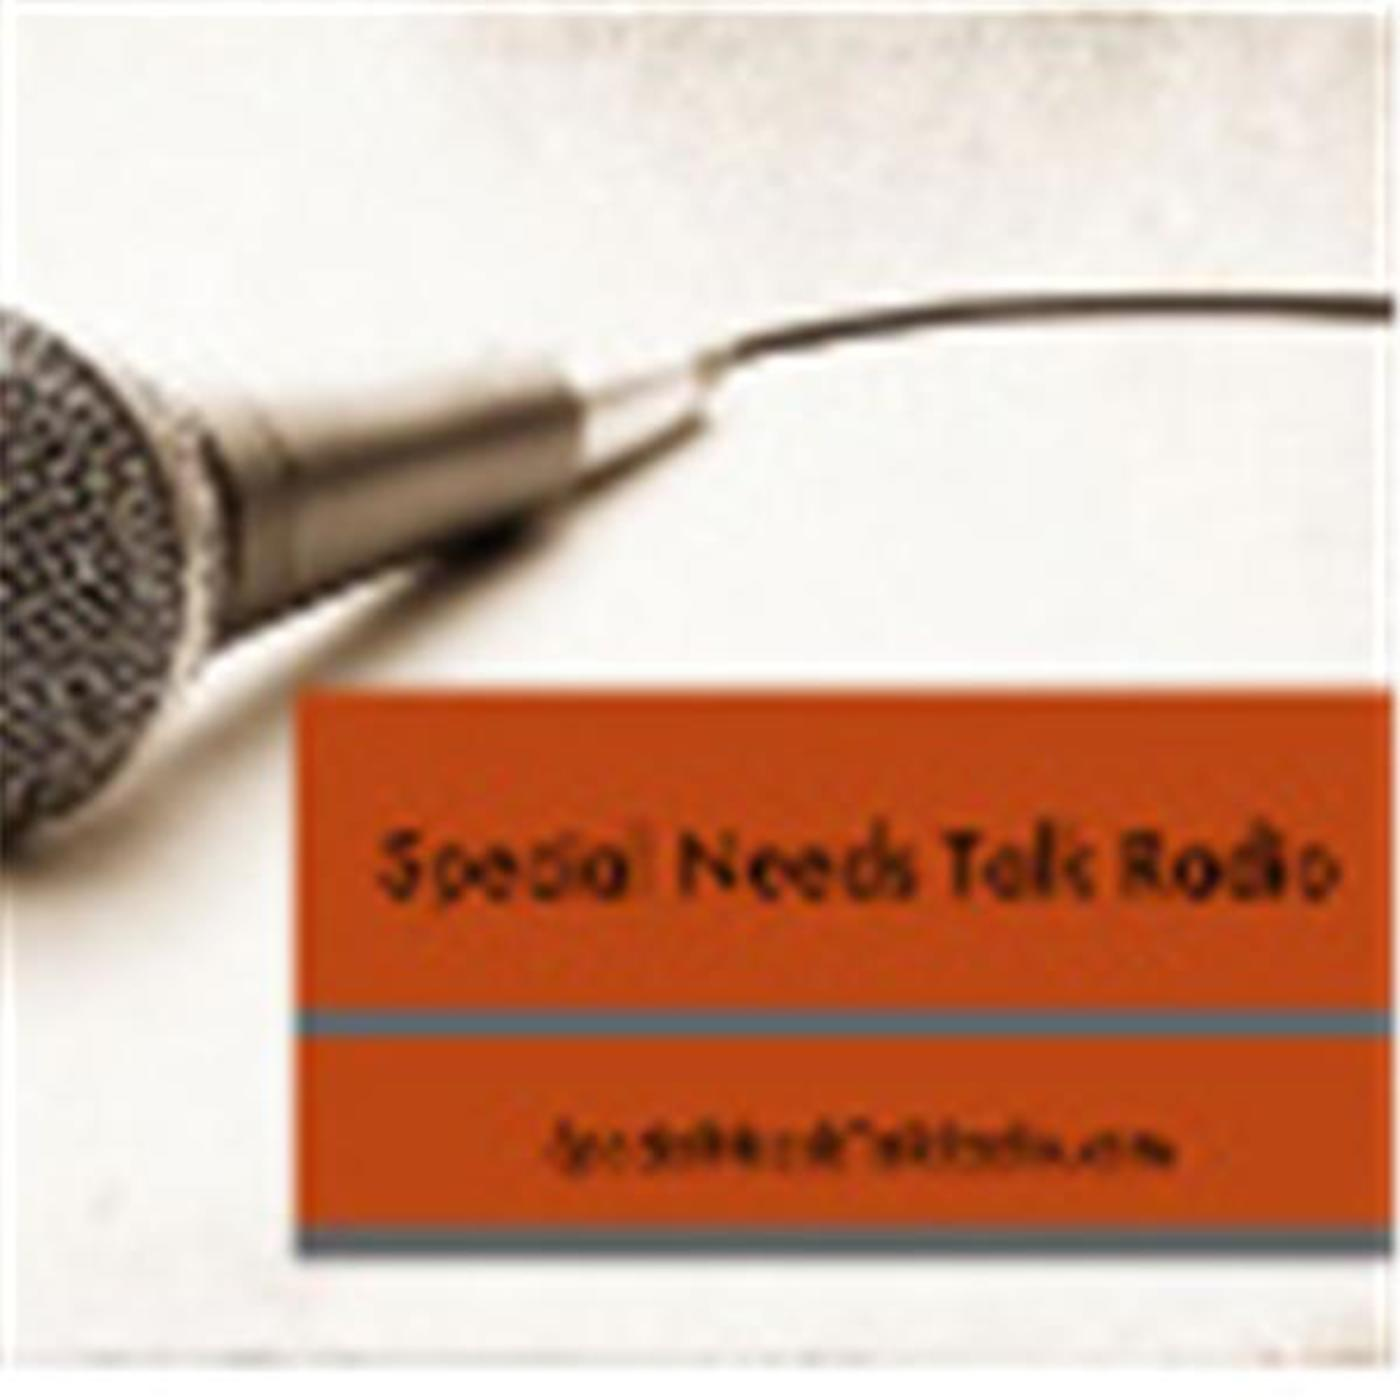 Special Needs Talk Radio